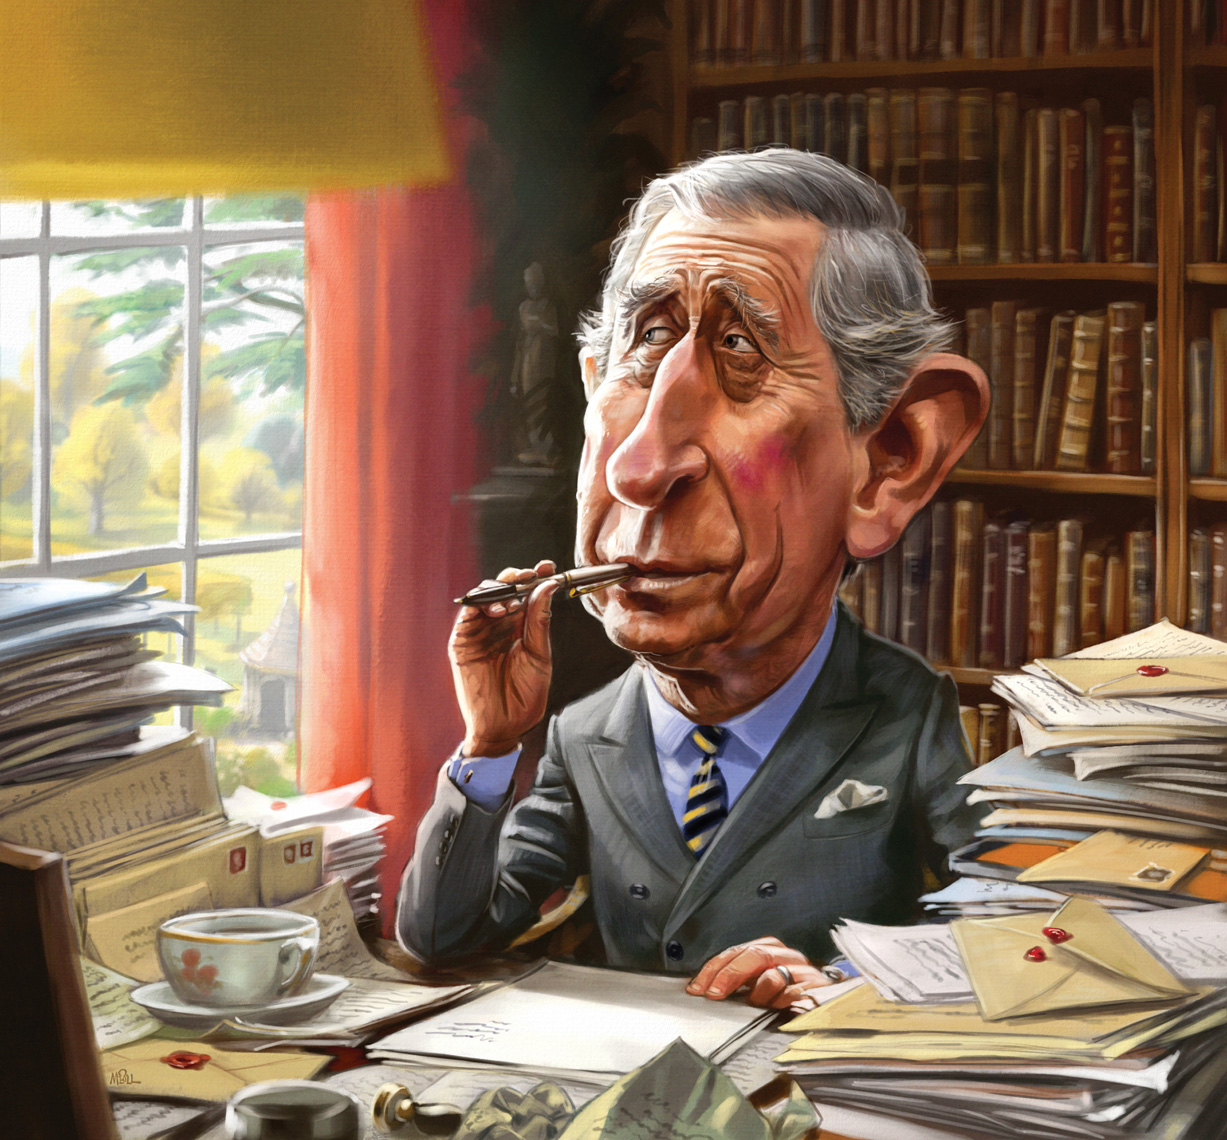 mcwilliam_caricature_prince-charles.jpg